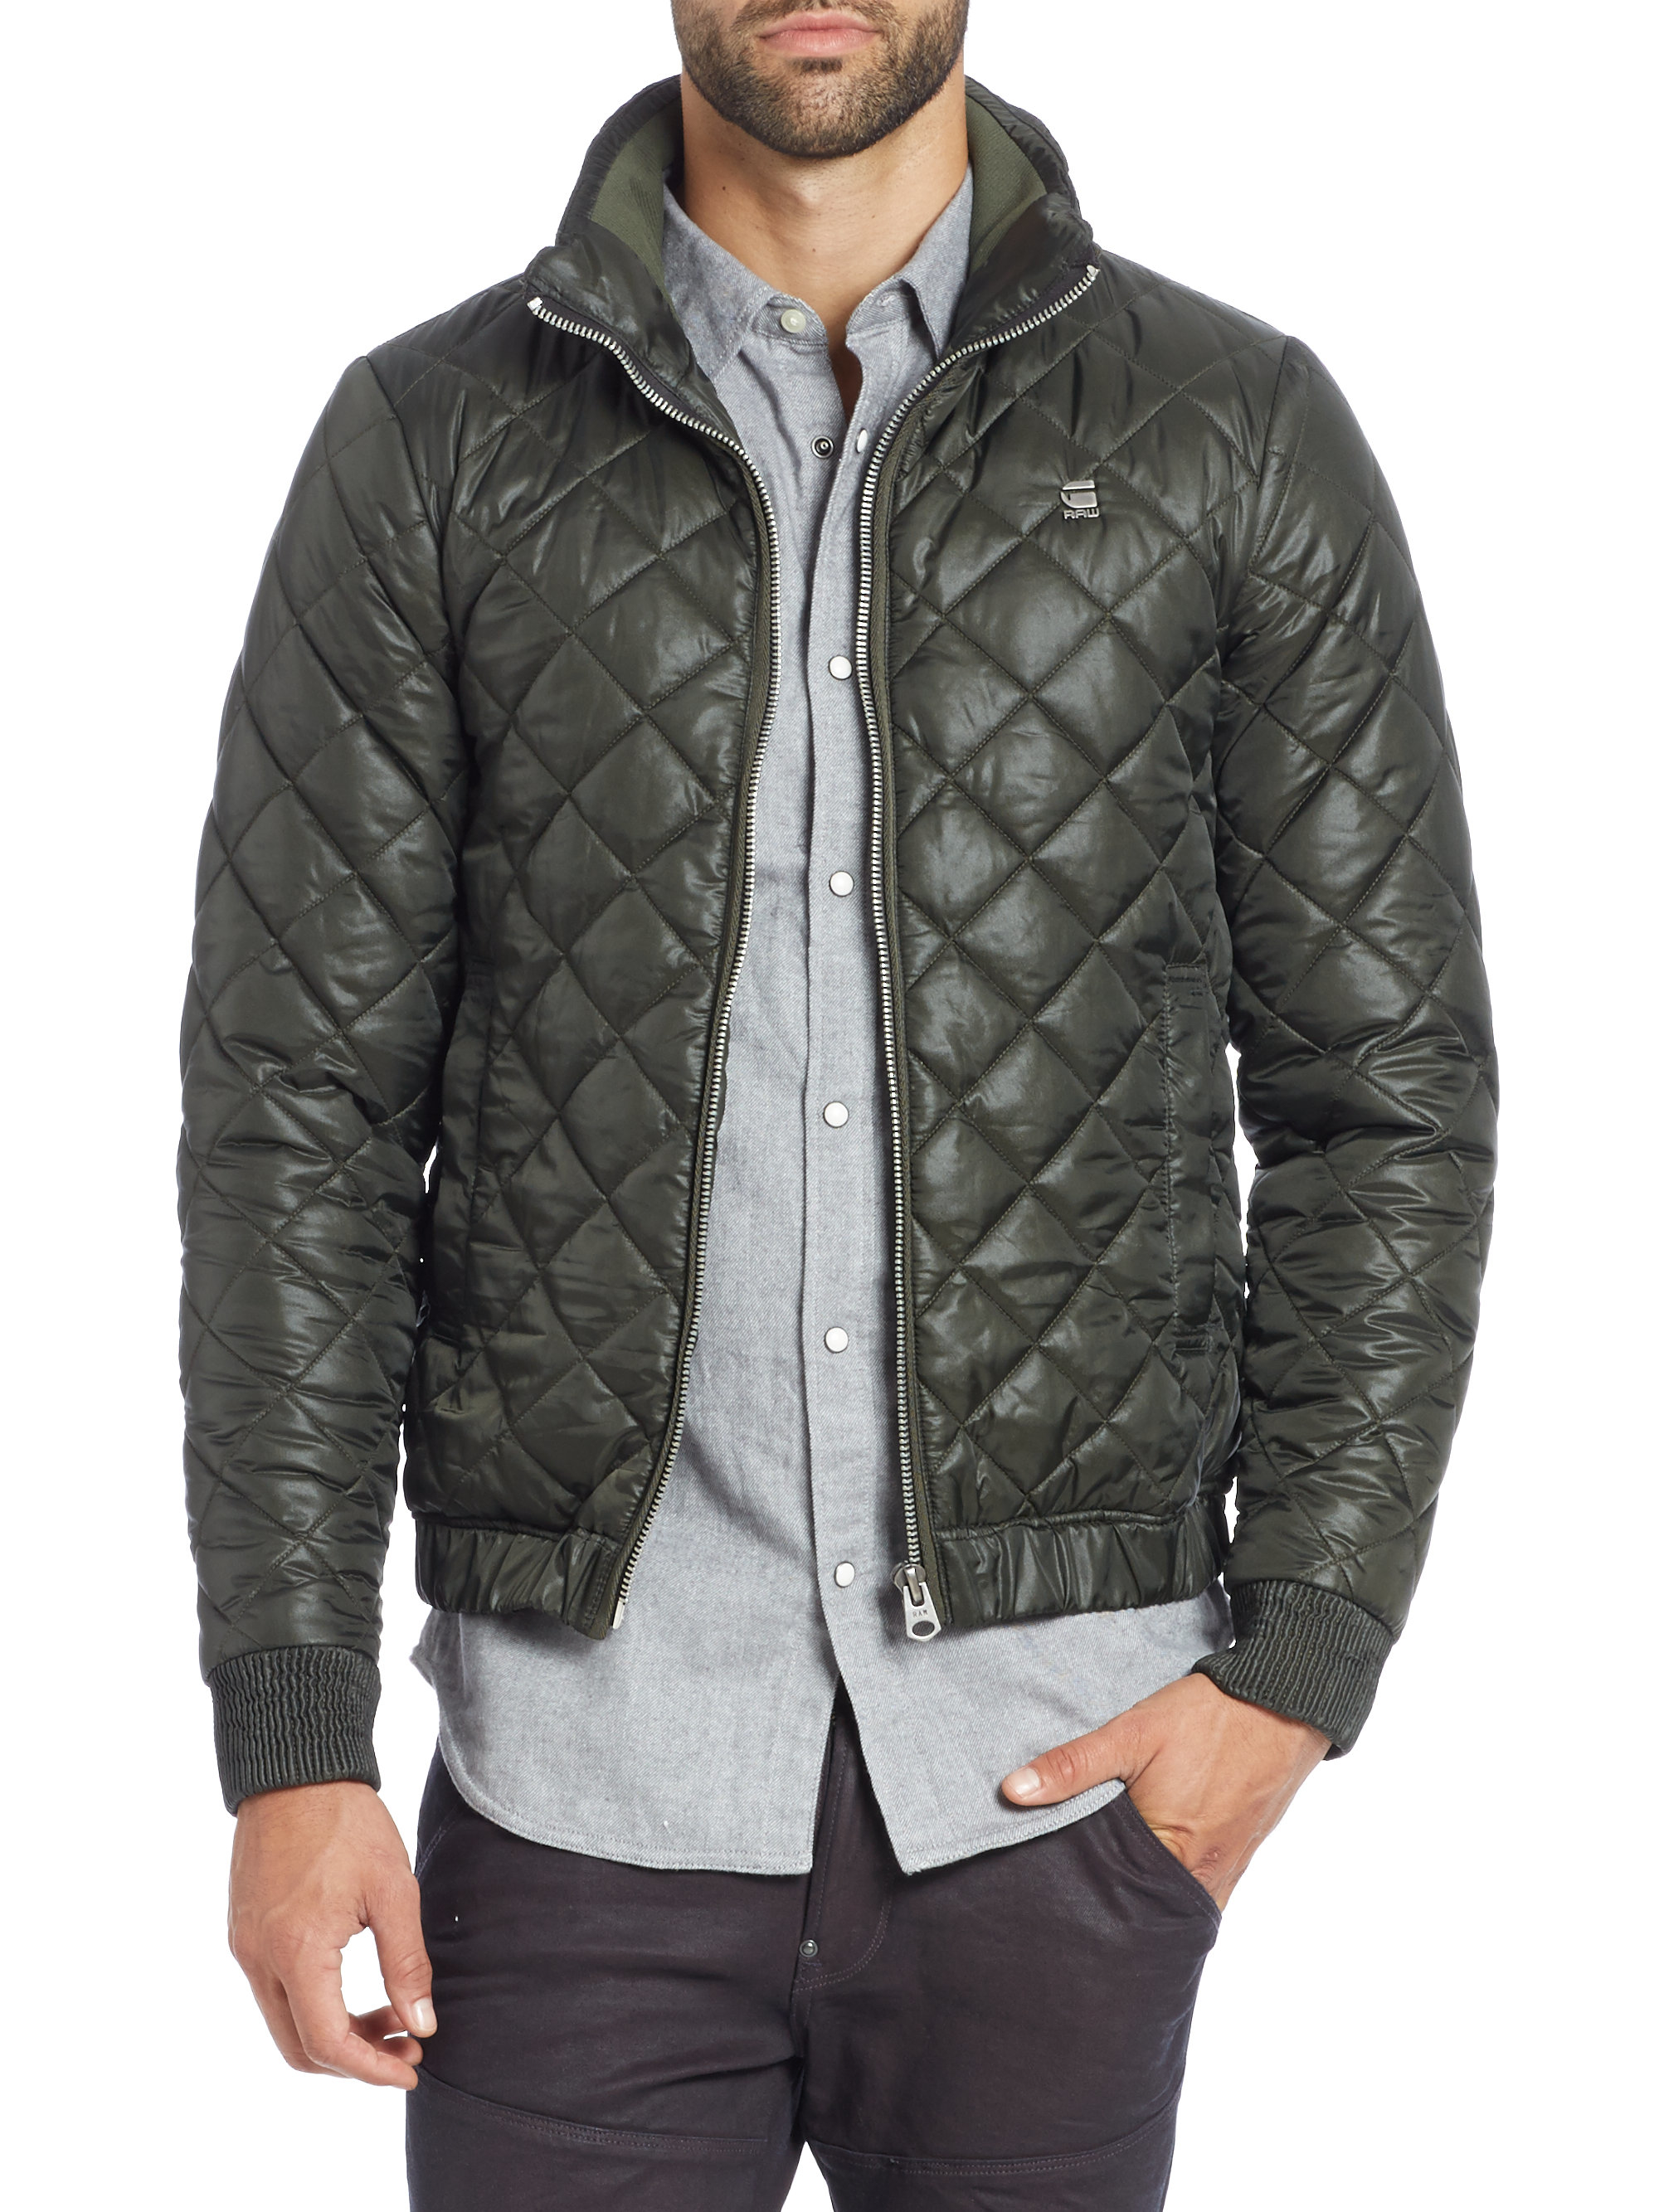 G-star raw Meefic Quilted Jacket in Green for Men | Lyst